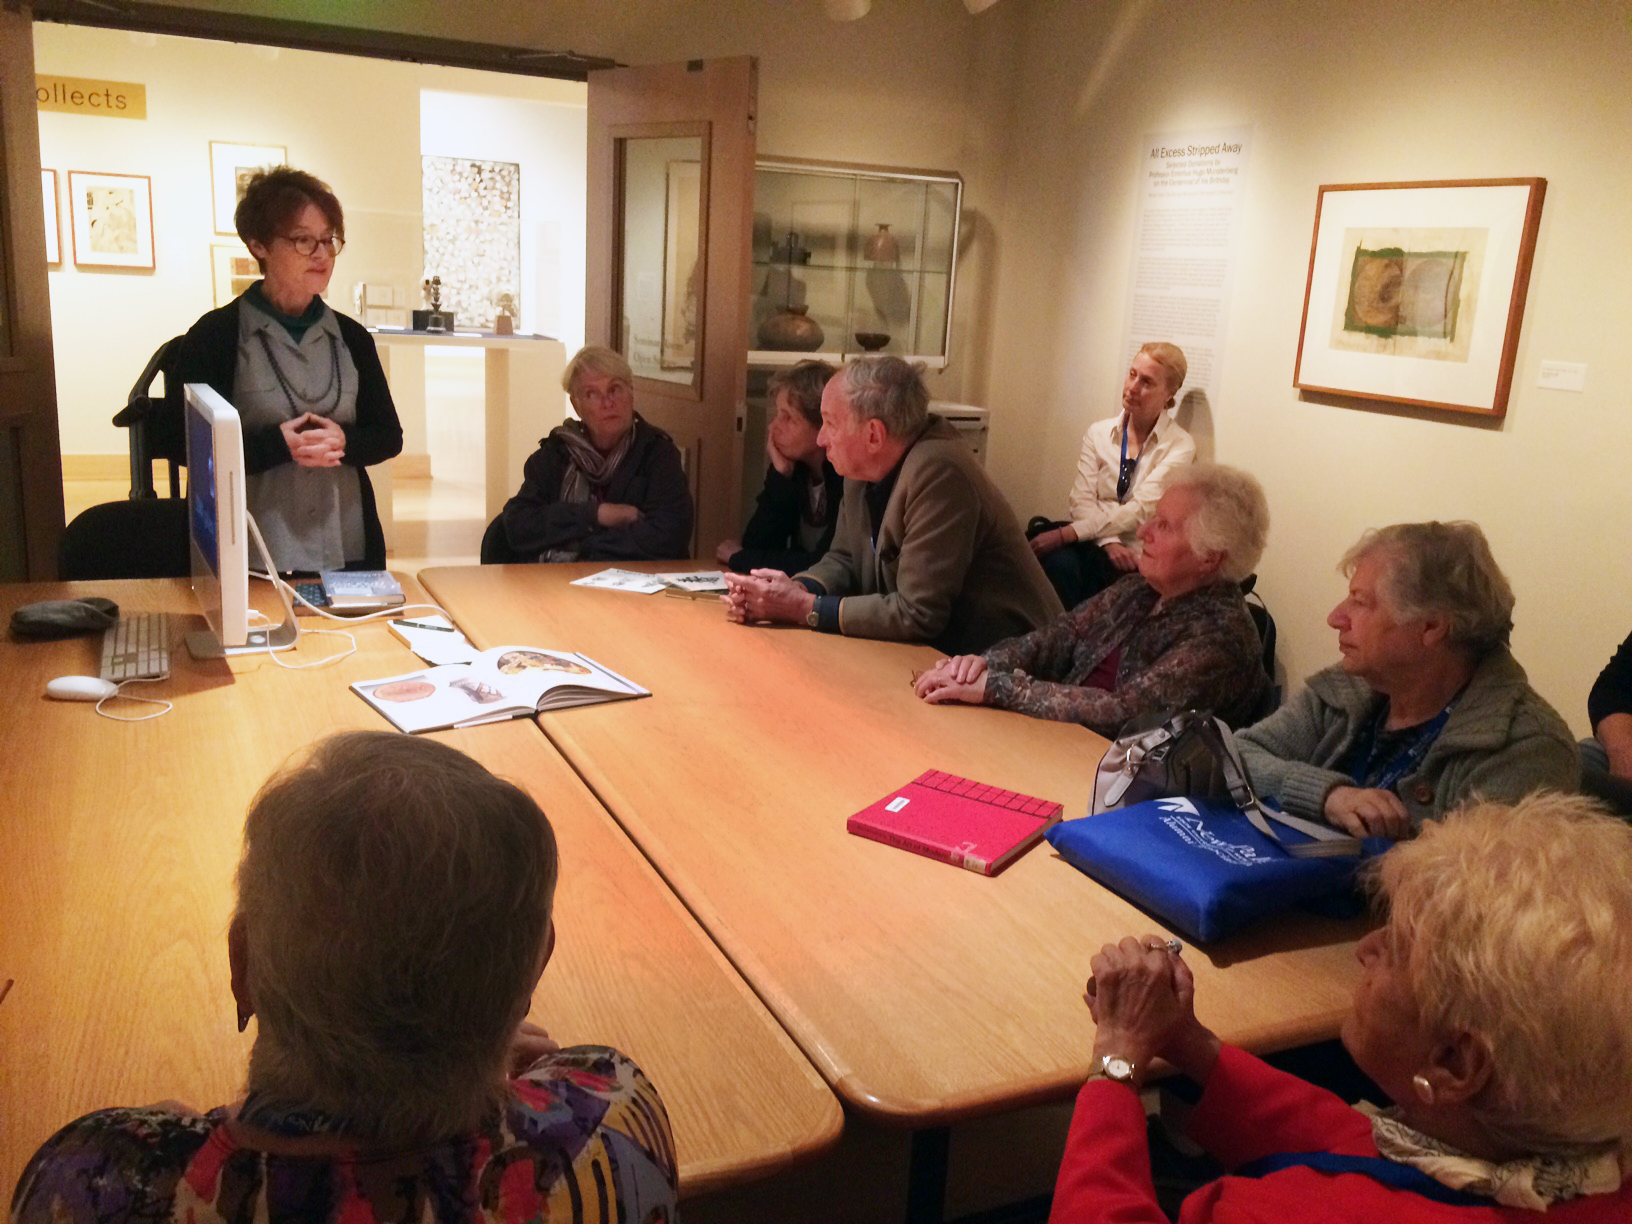 Prof. Elizabeth Brotherton speaks to a group of alumni who studied art history with Prof. Hugo Munsterberg in the 60s and 70s.